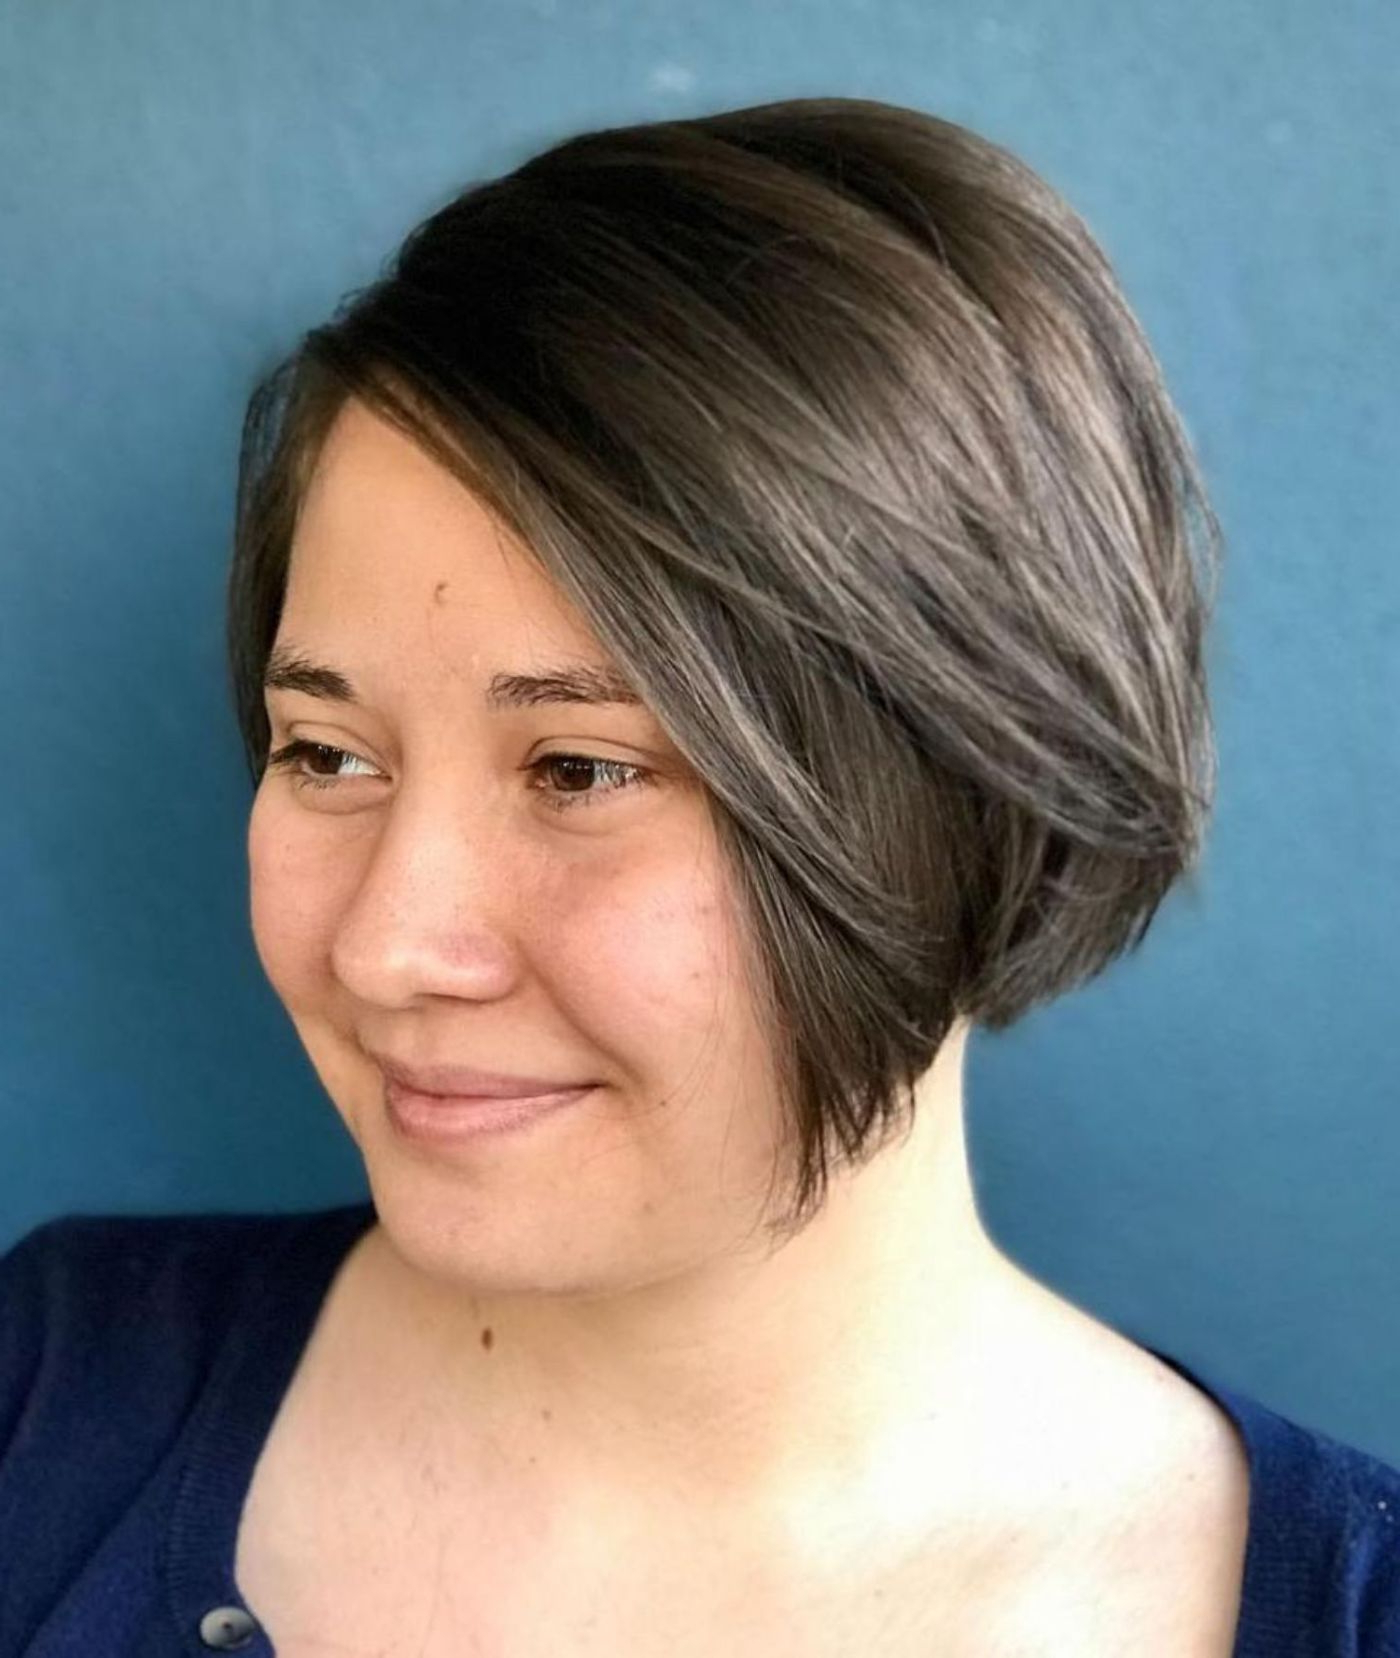 Pin On Short Hair Pertaining To Simple Side Parted Jaw Length Bob Hairstyles (Gallery 1 of 20)